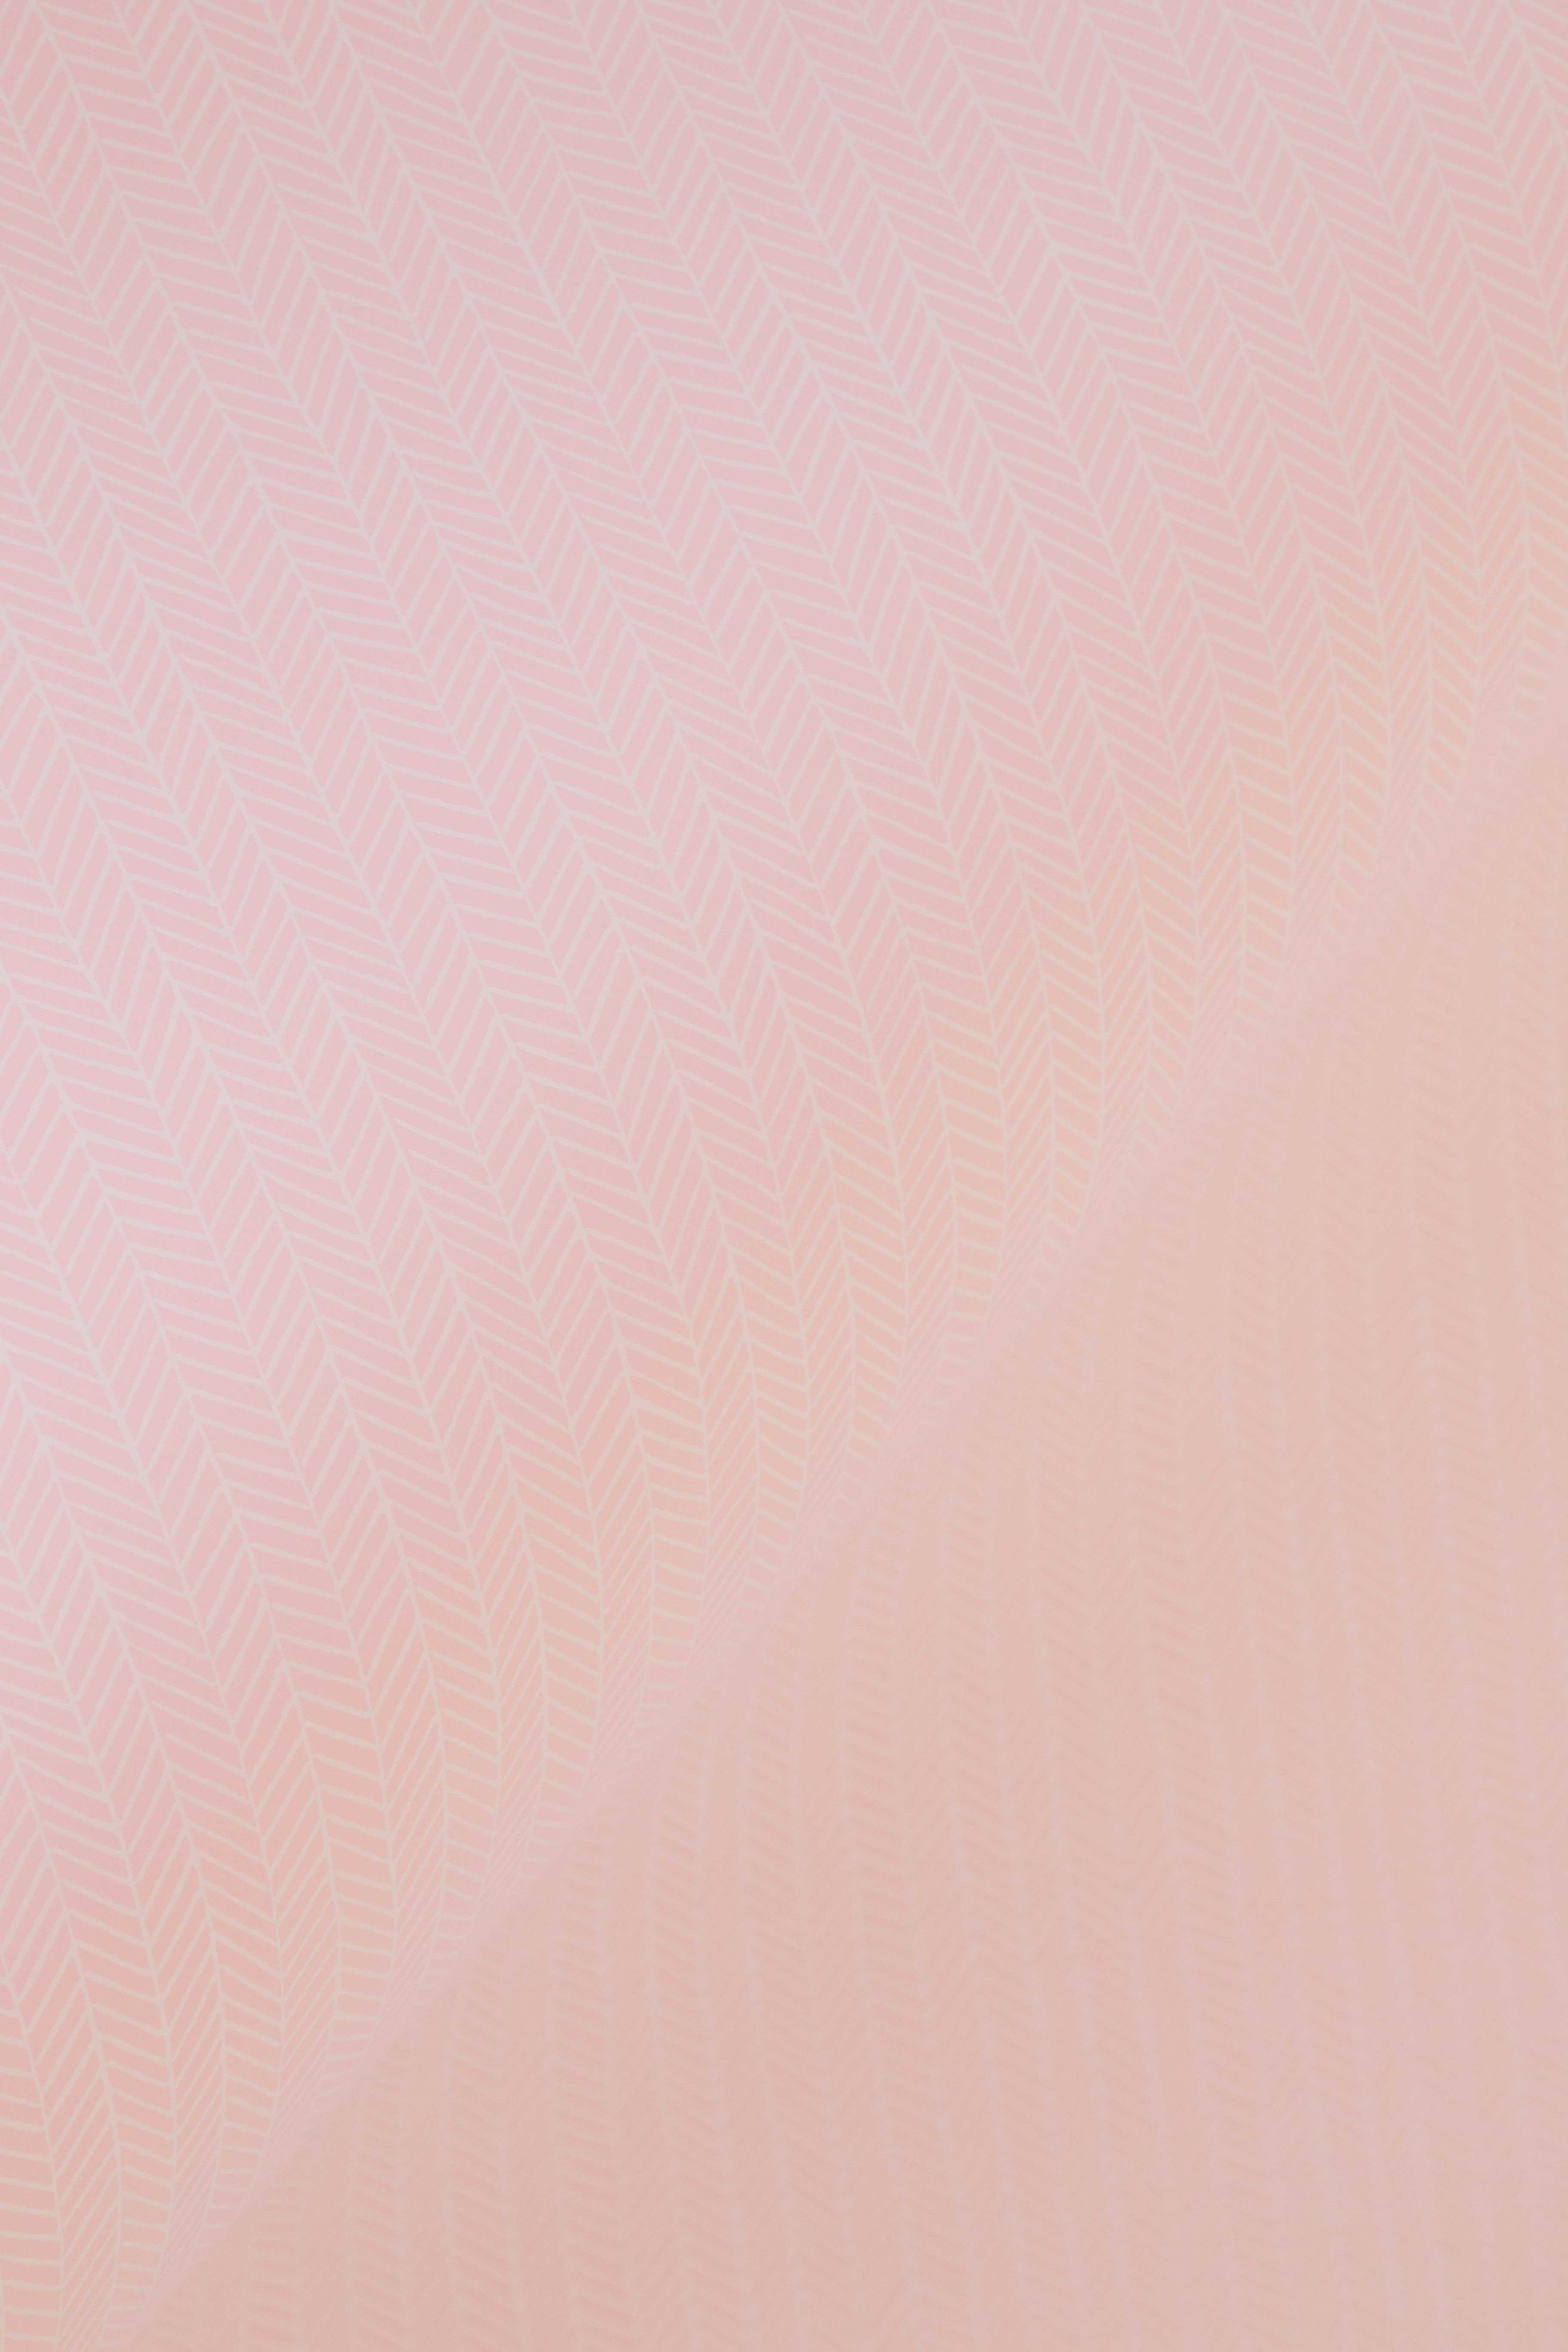 Herringbone in Blush, SL190-04